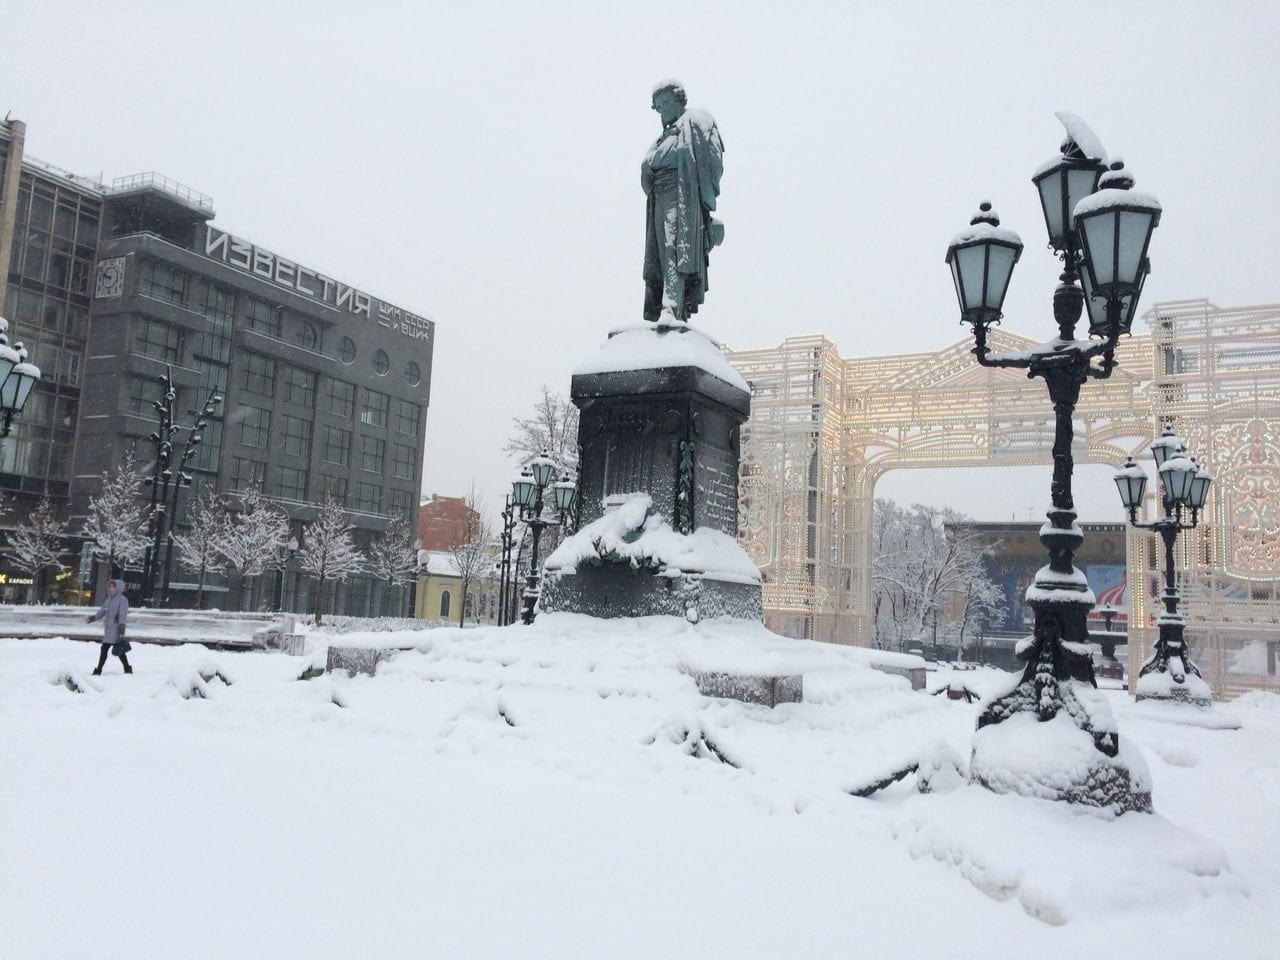 snowy Moscow in winter